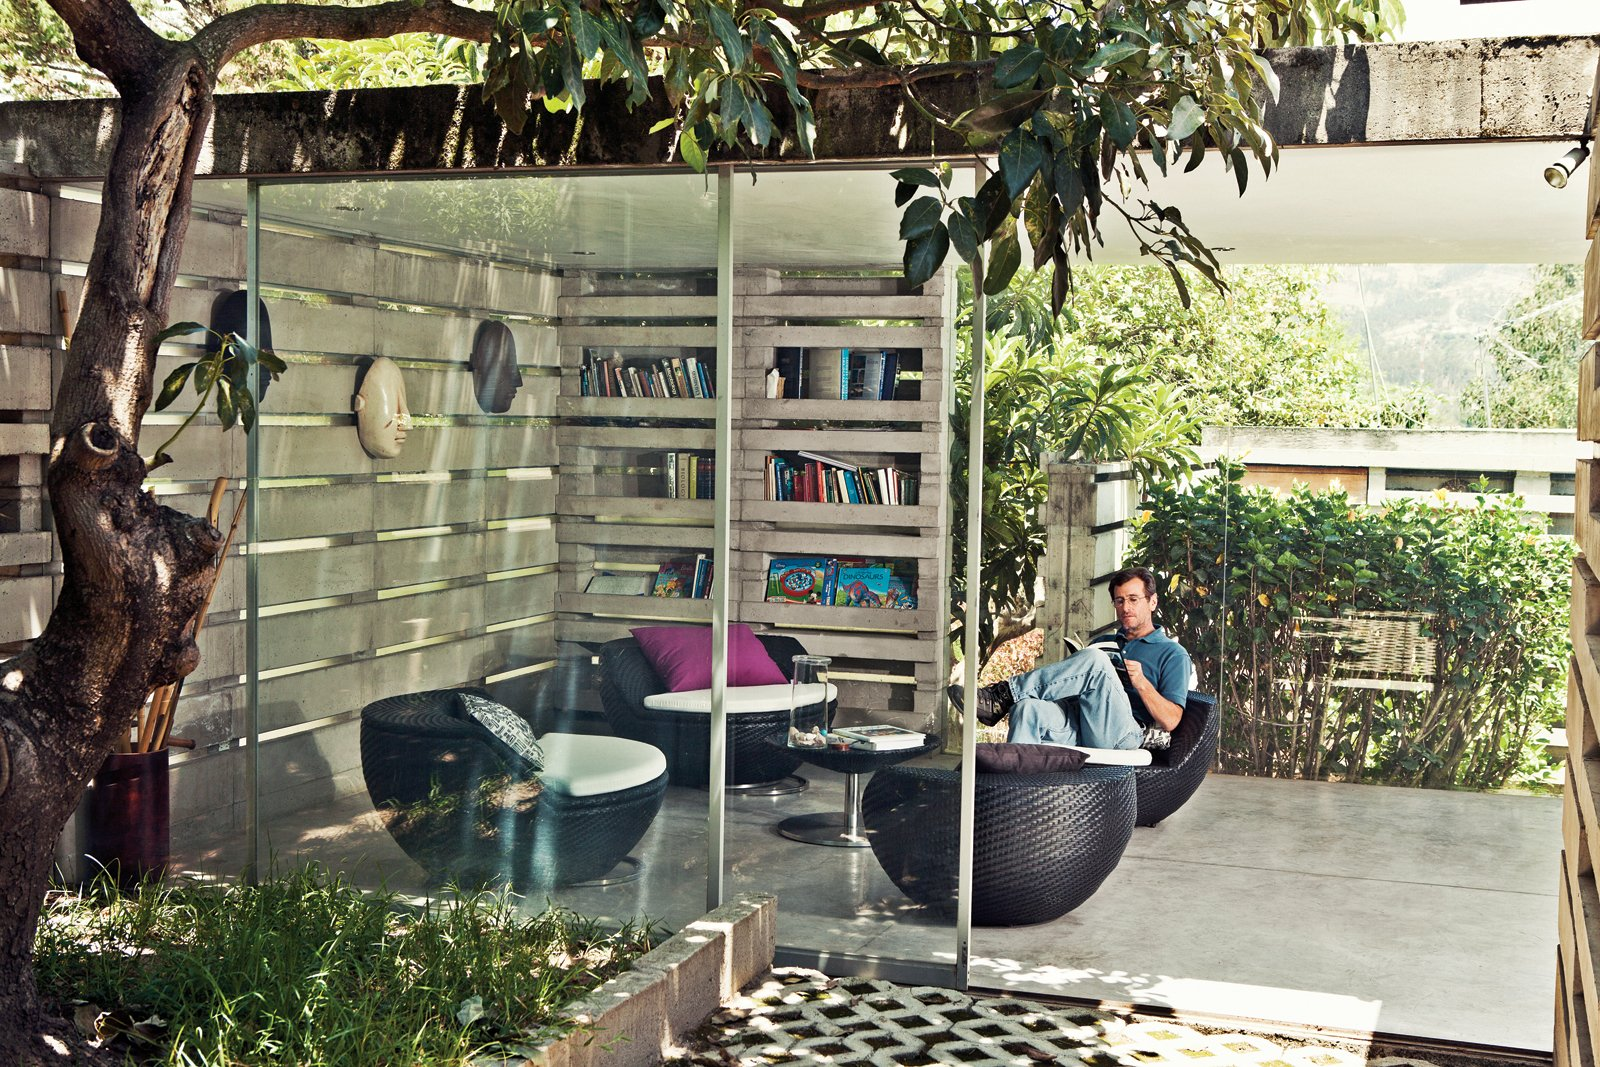 """Herman Pasternak, an engineer and consultant who designs water treatment systems, is a childhood friend of Pentimento's owner, Desirée Marín, and now rents the house. He selected woven plastic chairs from Dream Works, a local company, for his reading room because they """"go with the inside-outside concept of the house."""" Tagged: Living Room, Concrete Floor, and Chair.  Photo 2 of 10 in An Innovative Modular Building System in Ecuador"""